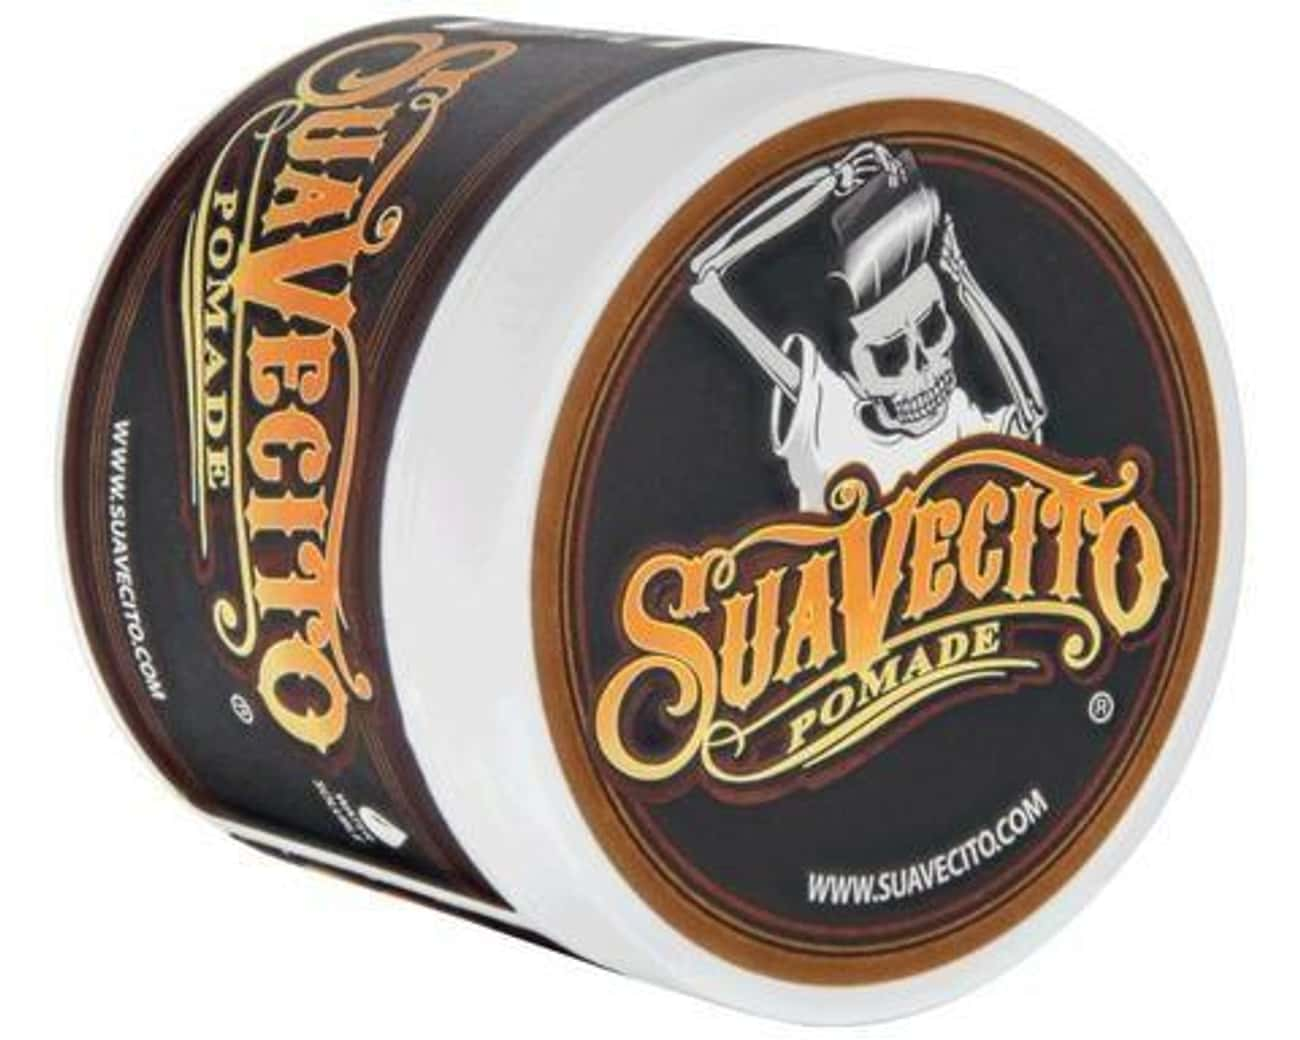 Suavecito - Original Hold Poma is listed (or ranked) 3 on the list 15 Male Care Products That Promote Personal Hygiene And Confidence